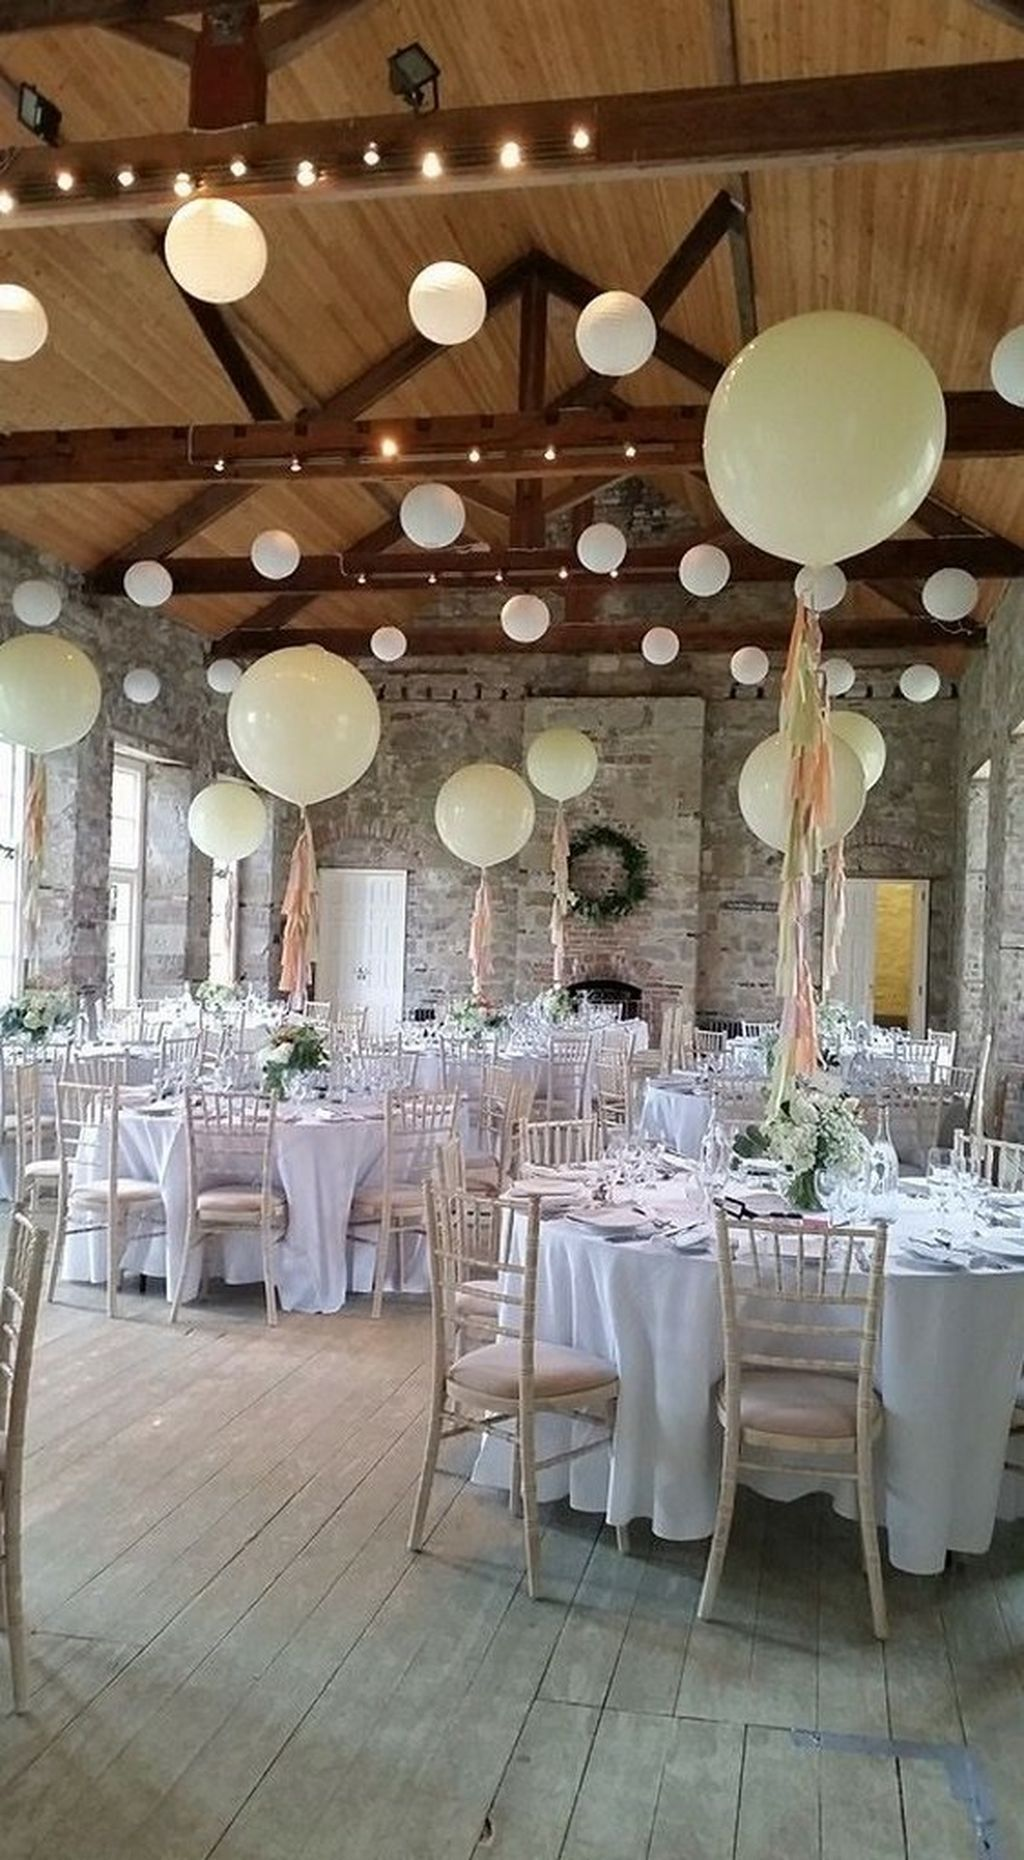 80 simple and beautiful balloon wedding centerpieces decoration cool 80 simple and beautiful balloon wedding centerpieces decoration ideas httplovellywedding junglespirit Gallery